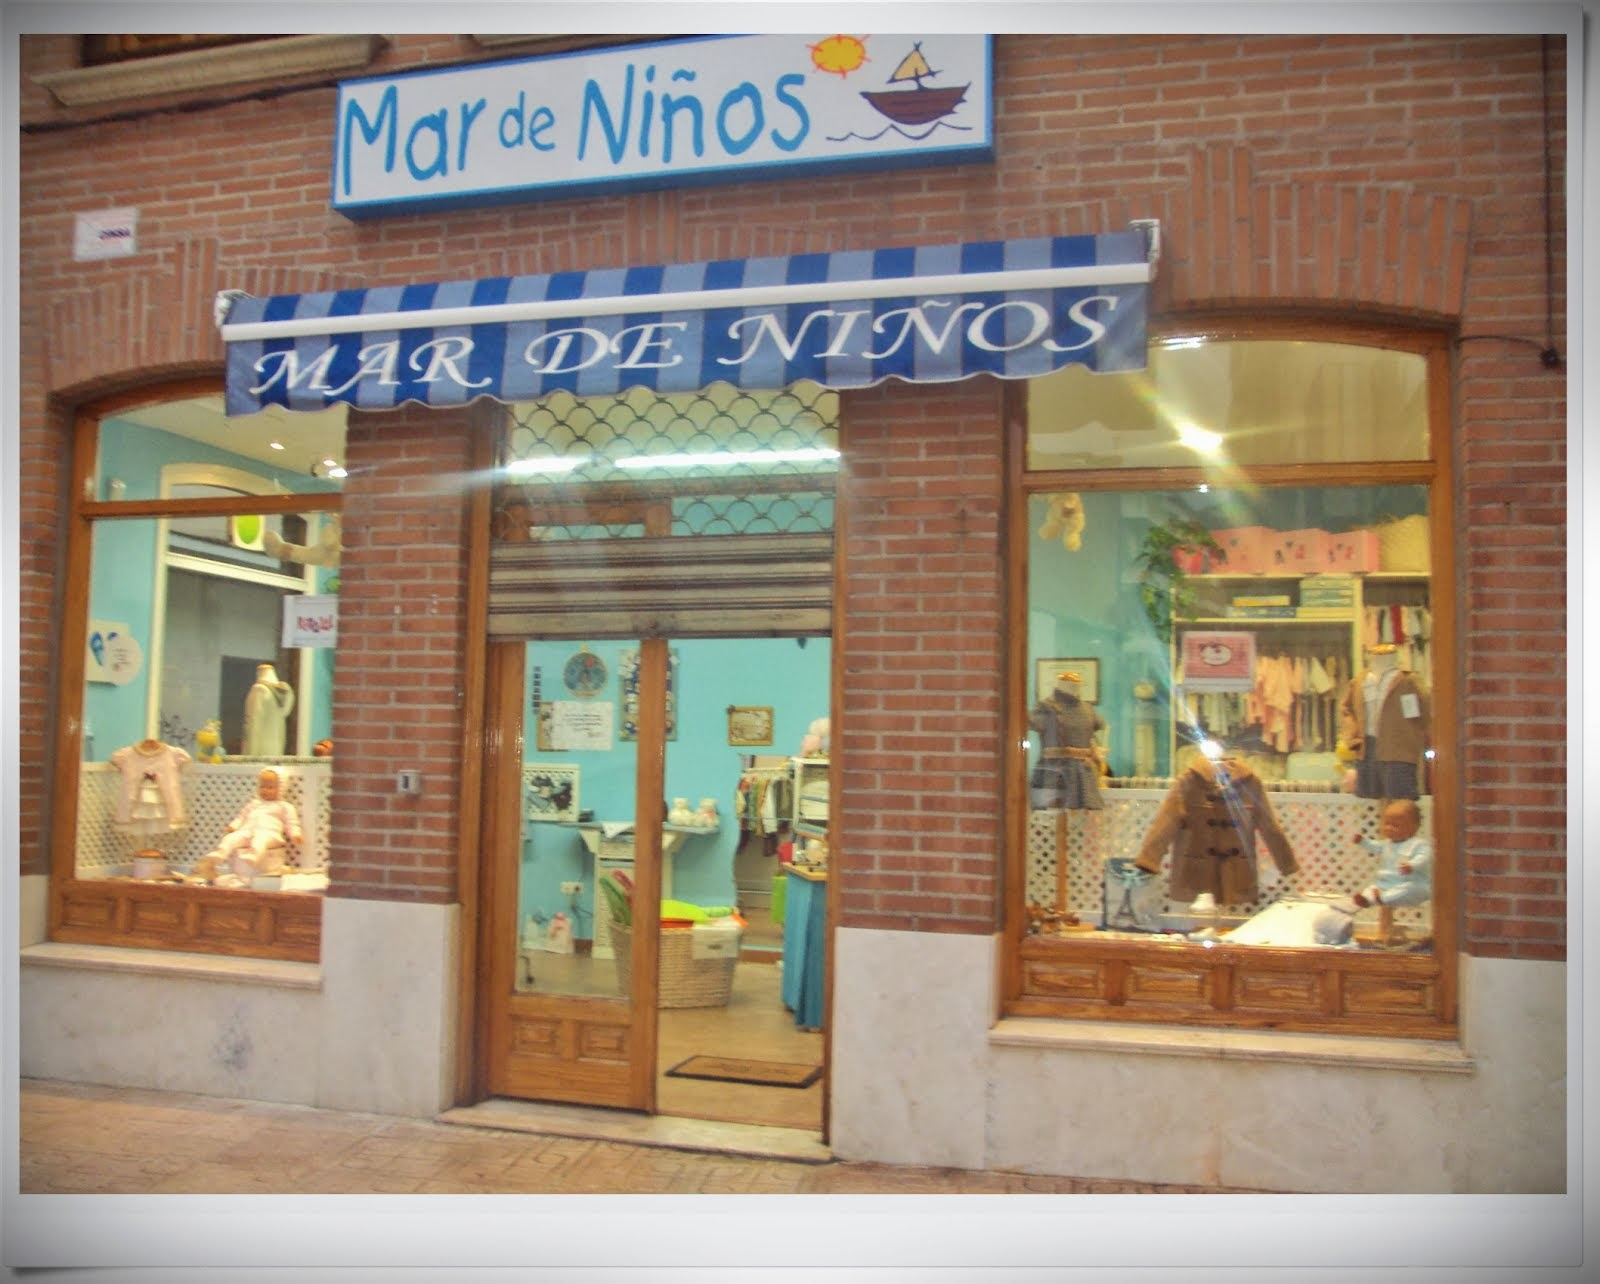 ASI ES NUESTRA TIENDA EN C/OROZCO Nº 3 DE TORRIJOS ( TOLEDO)